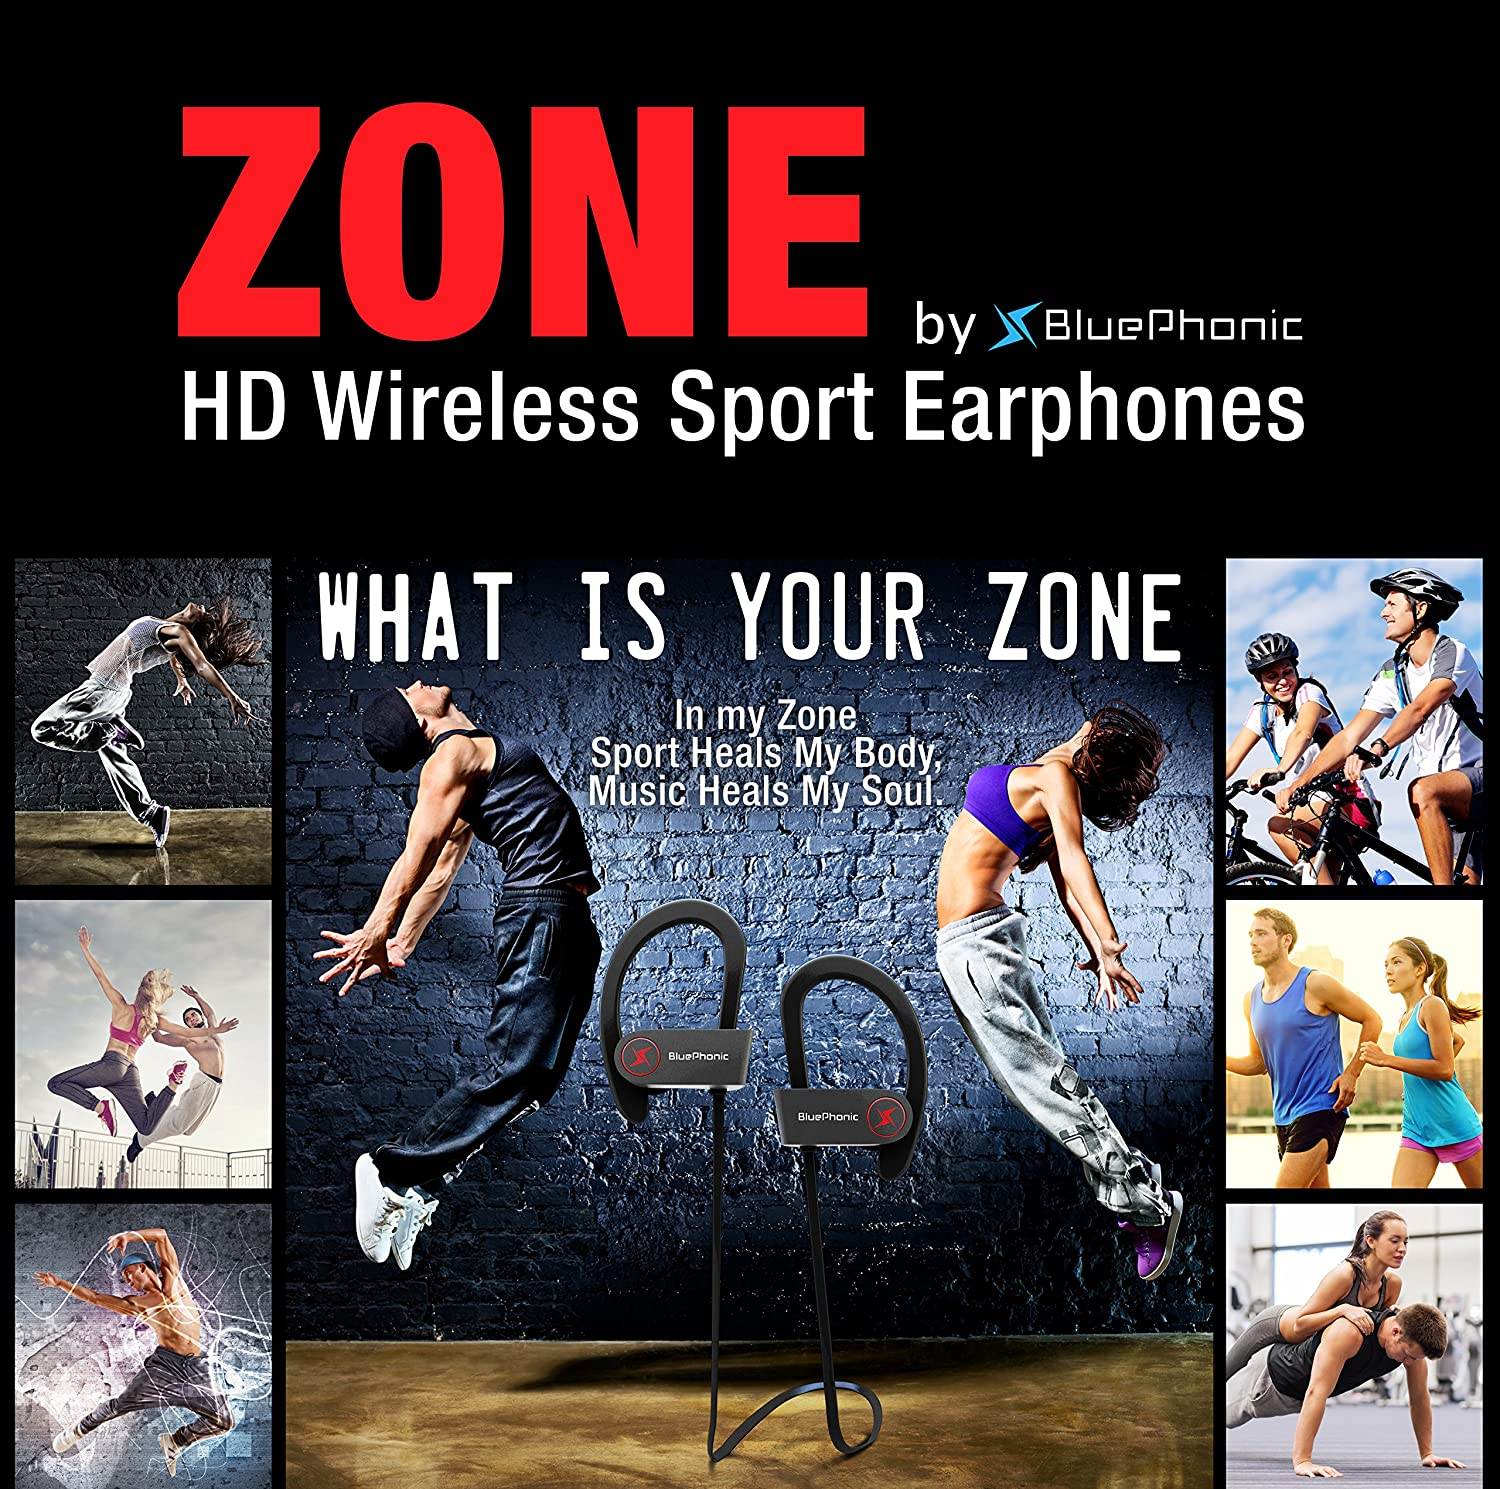 Bluephonic Wireless Sport Bluetooth Headphones – Hd Beats Sound Quality – Sweat Proof Stable Fit in Ear Workout Earbuds – Ergonomic Running Earphones – Noise Cancelling Microphone Black